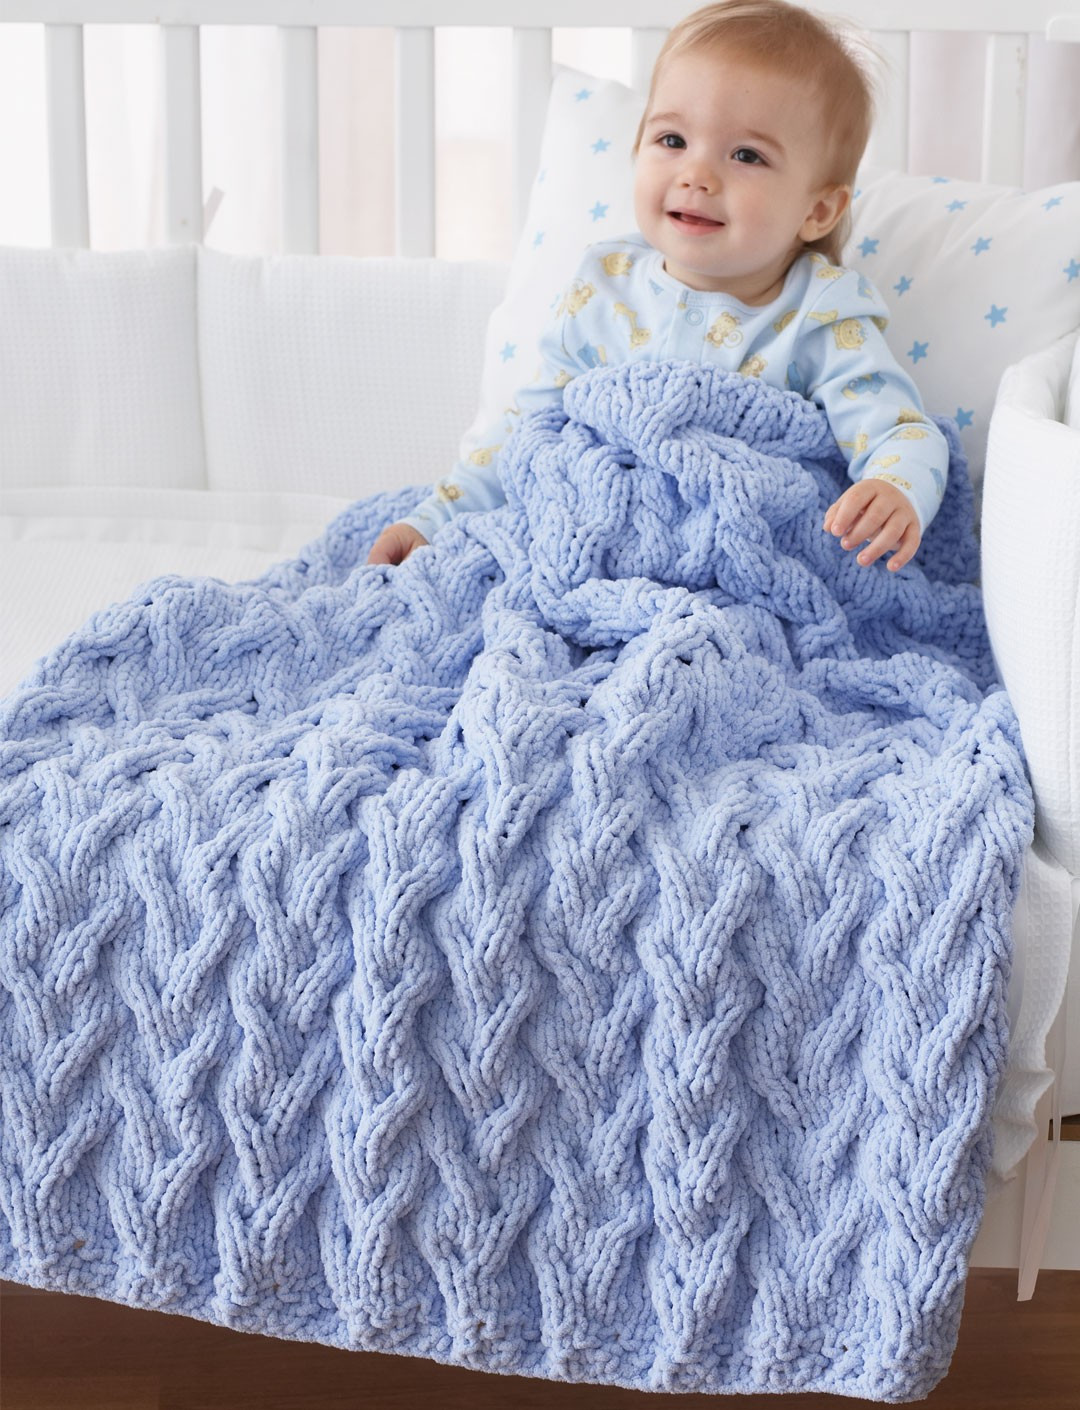 Beautiful Free Baby Blanket Knitting Patterns Chunky Yarn Crochet Free Chunky Knitting Patterns Of Brilliant 46 Ideas Free Chunky Knitting Patterns